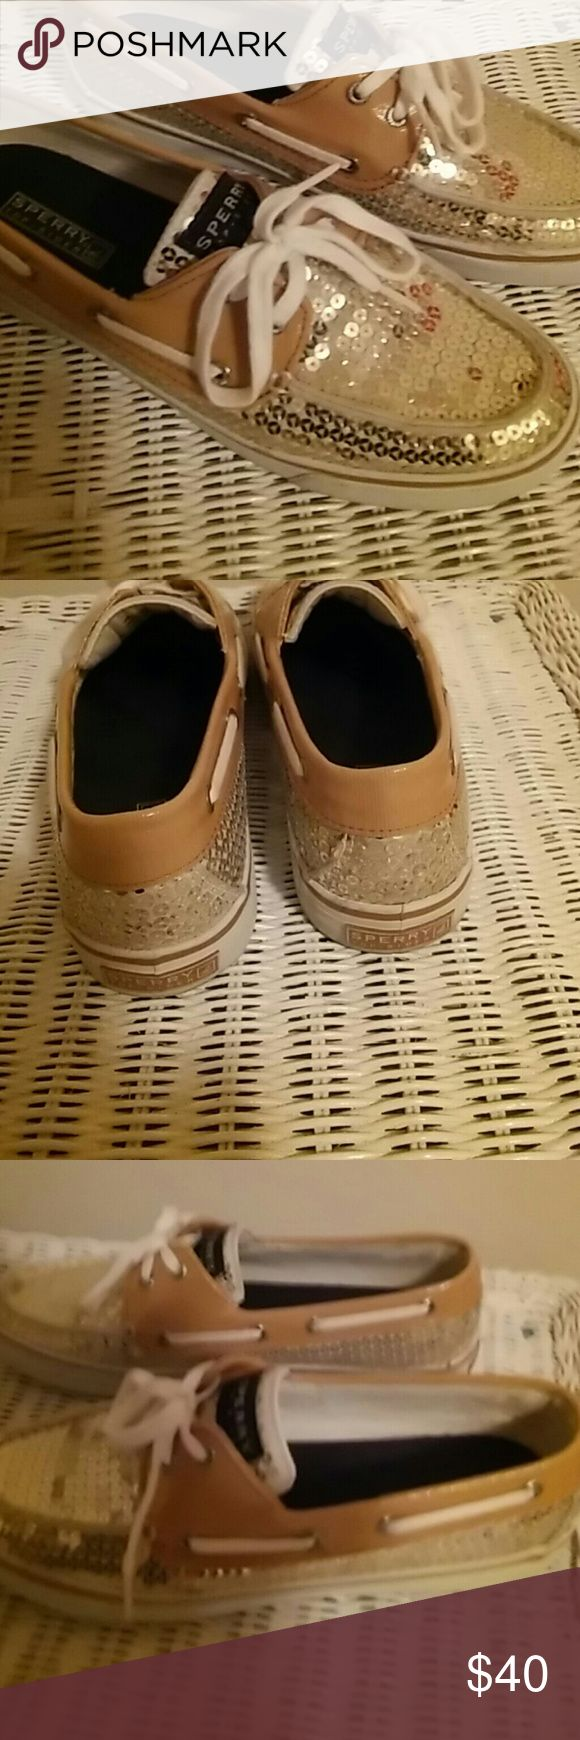 Sperry shoes Super nice and clean Sperry shoes Sperry Top-Sider Shoes Moccasins